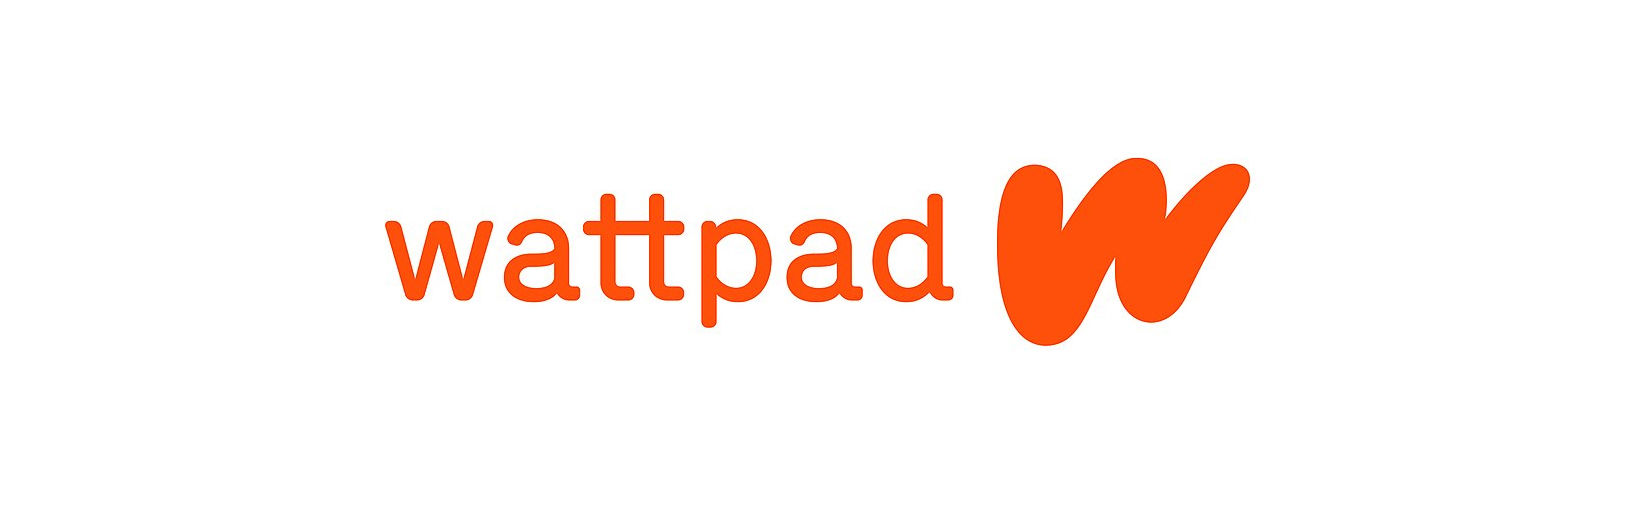 NL FILM AND WATTPAD STUDIOS ANNOUNCE EXCLUSIVE DUTCH-LANGUAGE PARTNERSHIP hero image